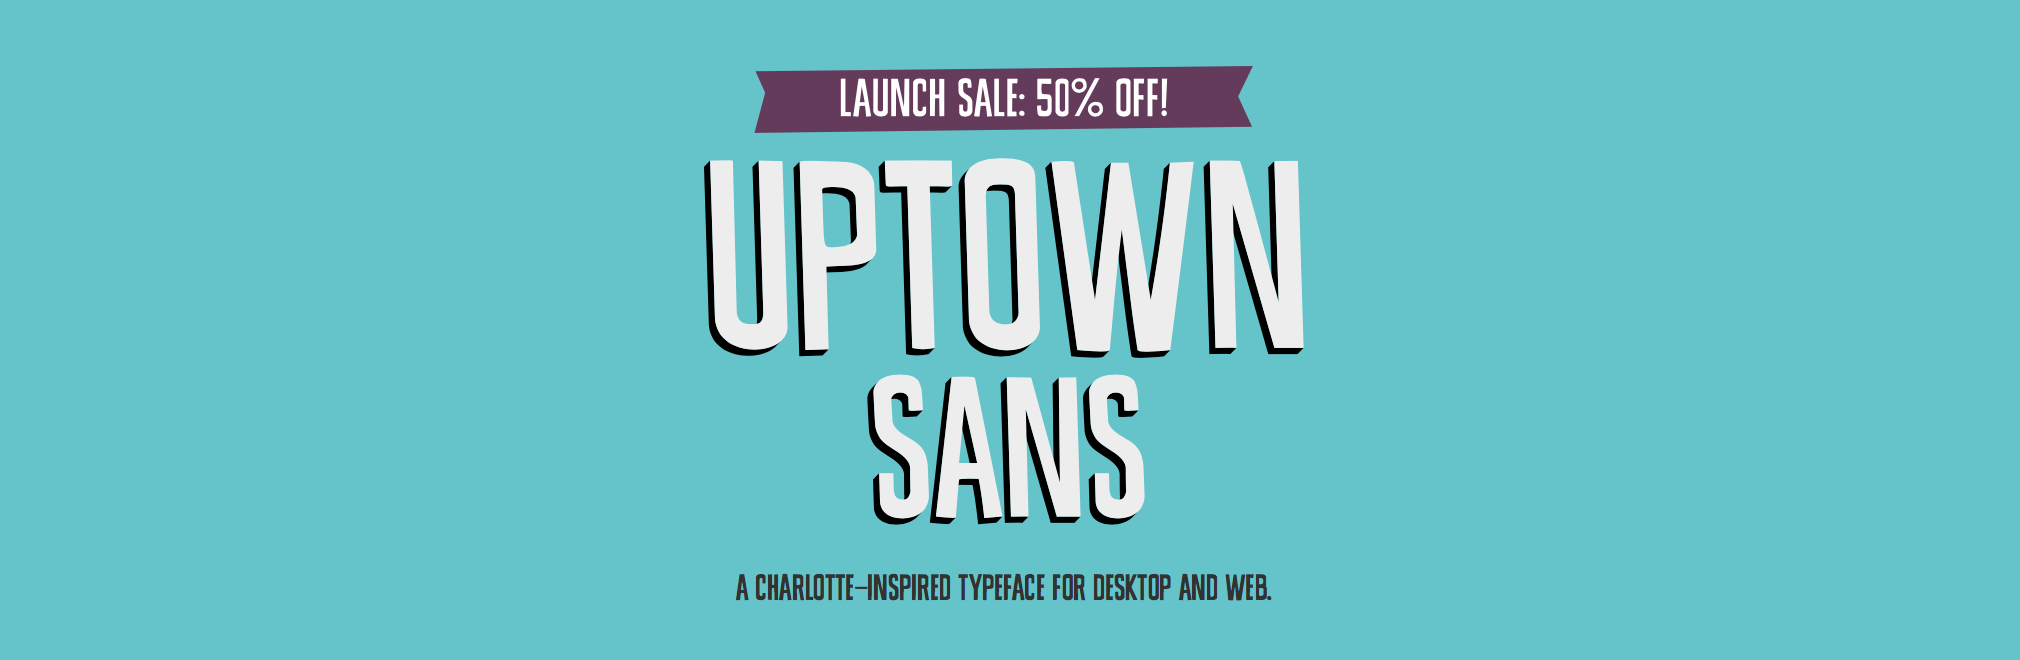 Uptown Sans. A Charlotte-inspired typeface for desktop and web